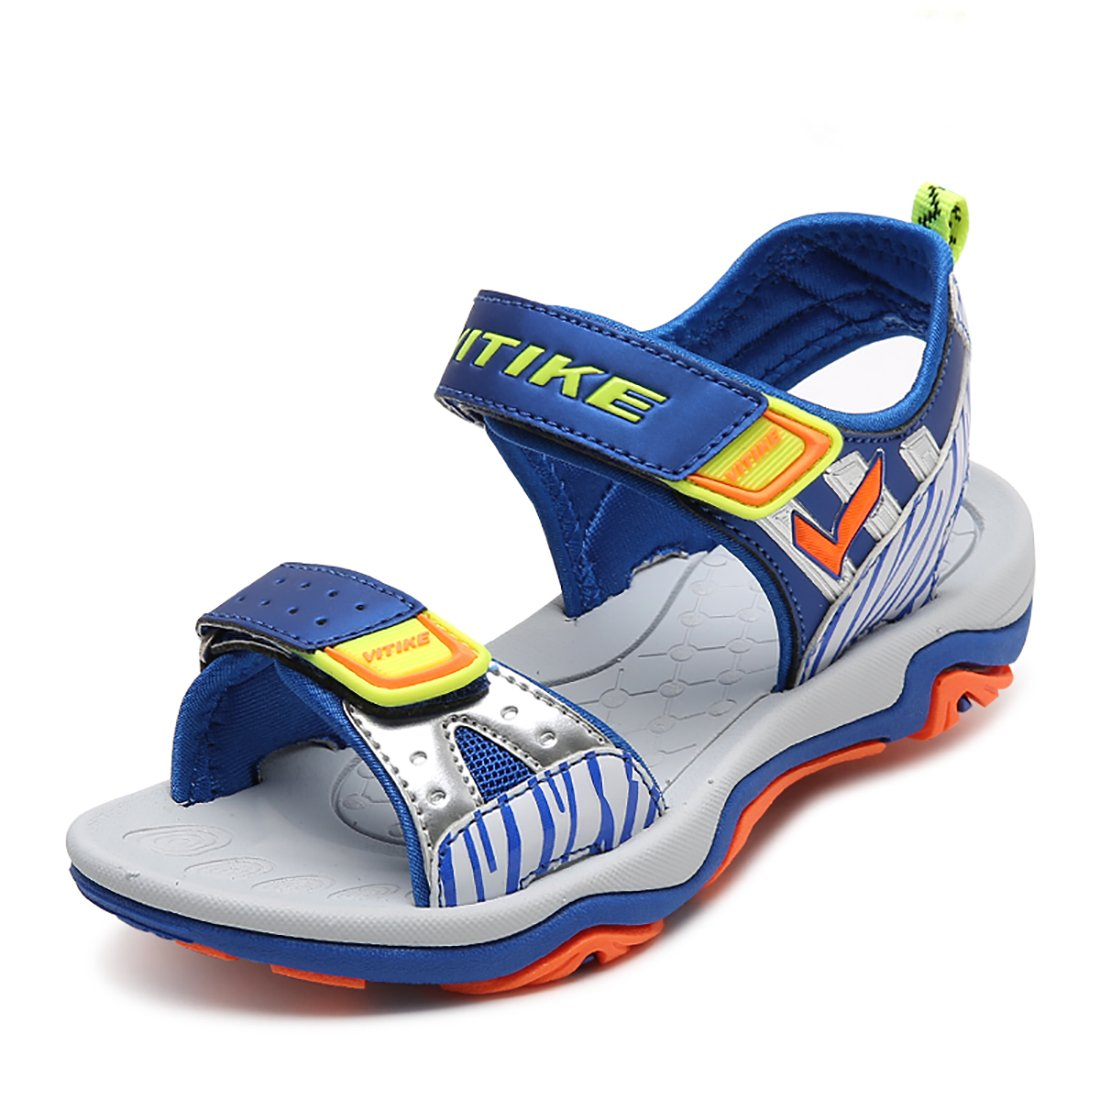 VITIKE Boys Sandals Little Kids Water Sandals for Summer(Little/Big Kids) (Big Kid 4M, Blue)